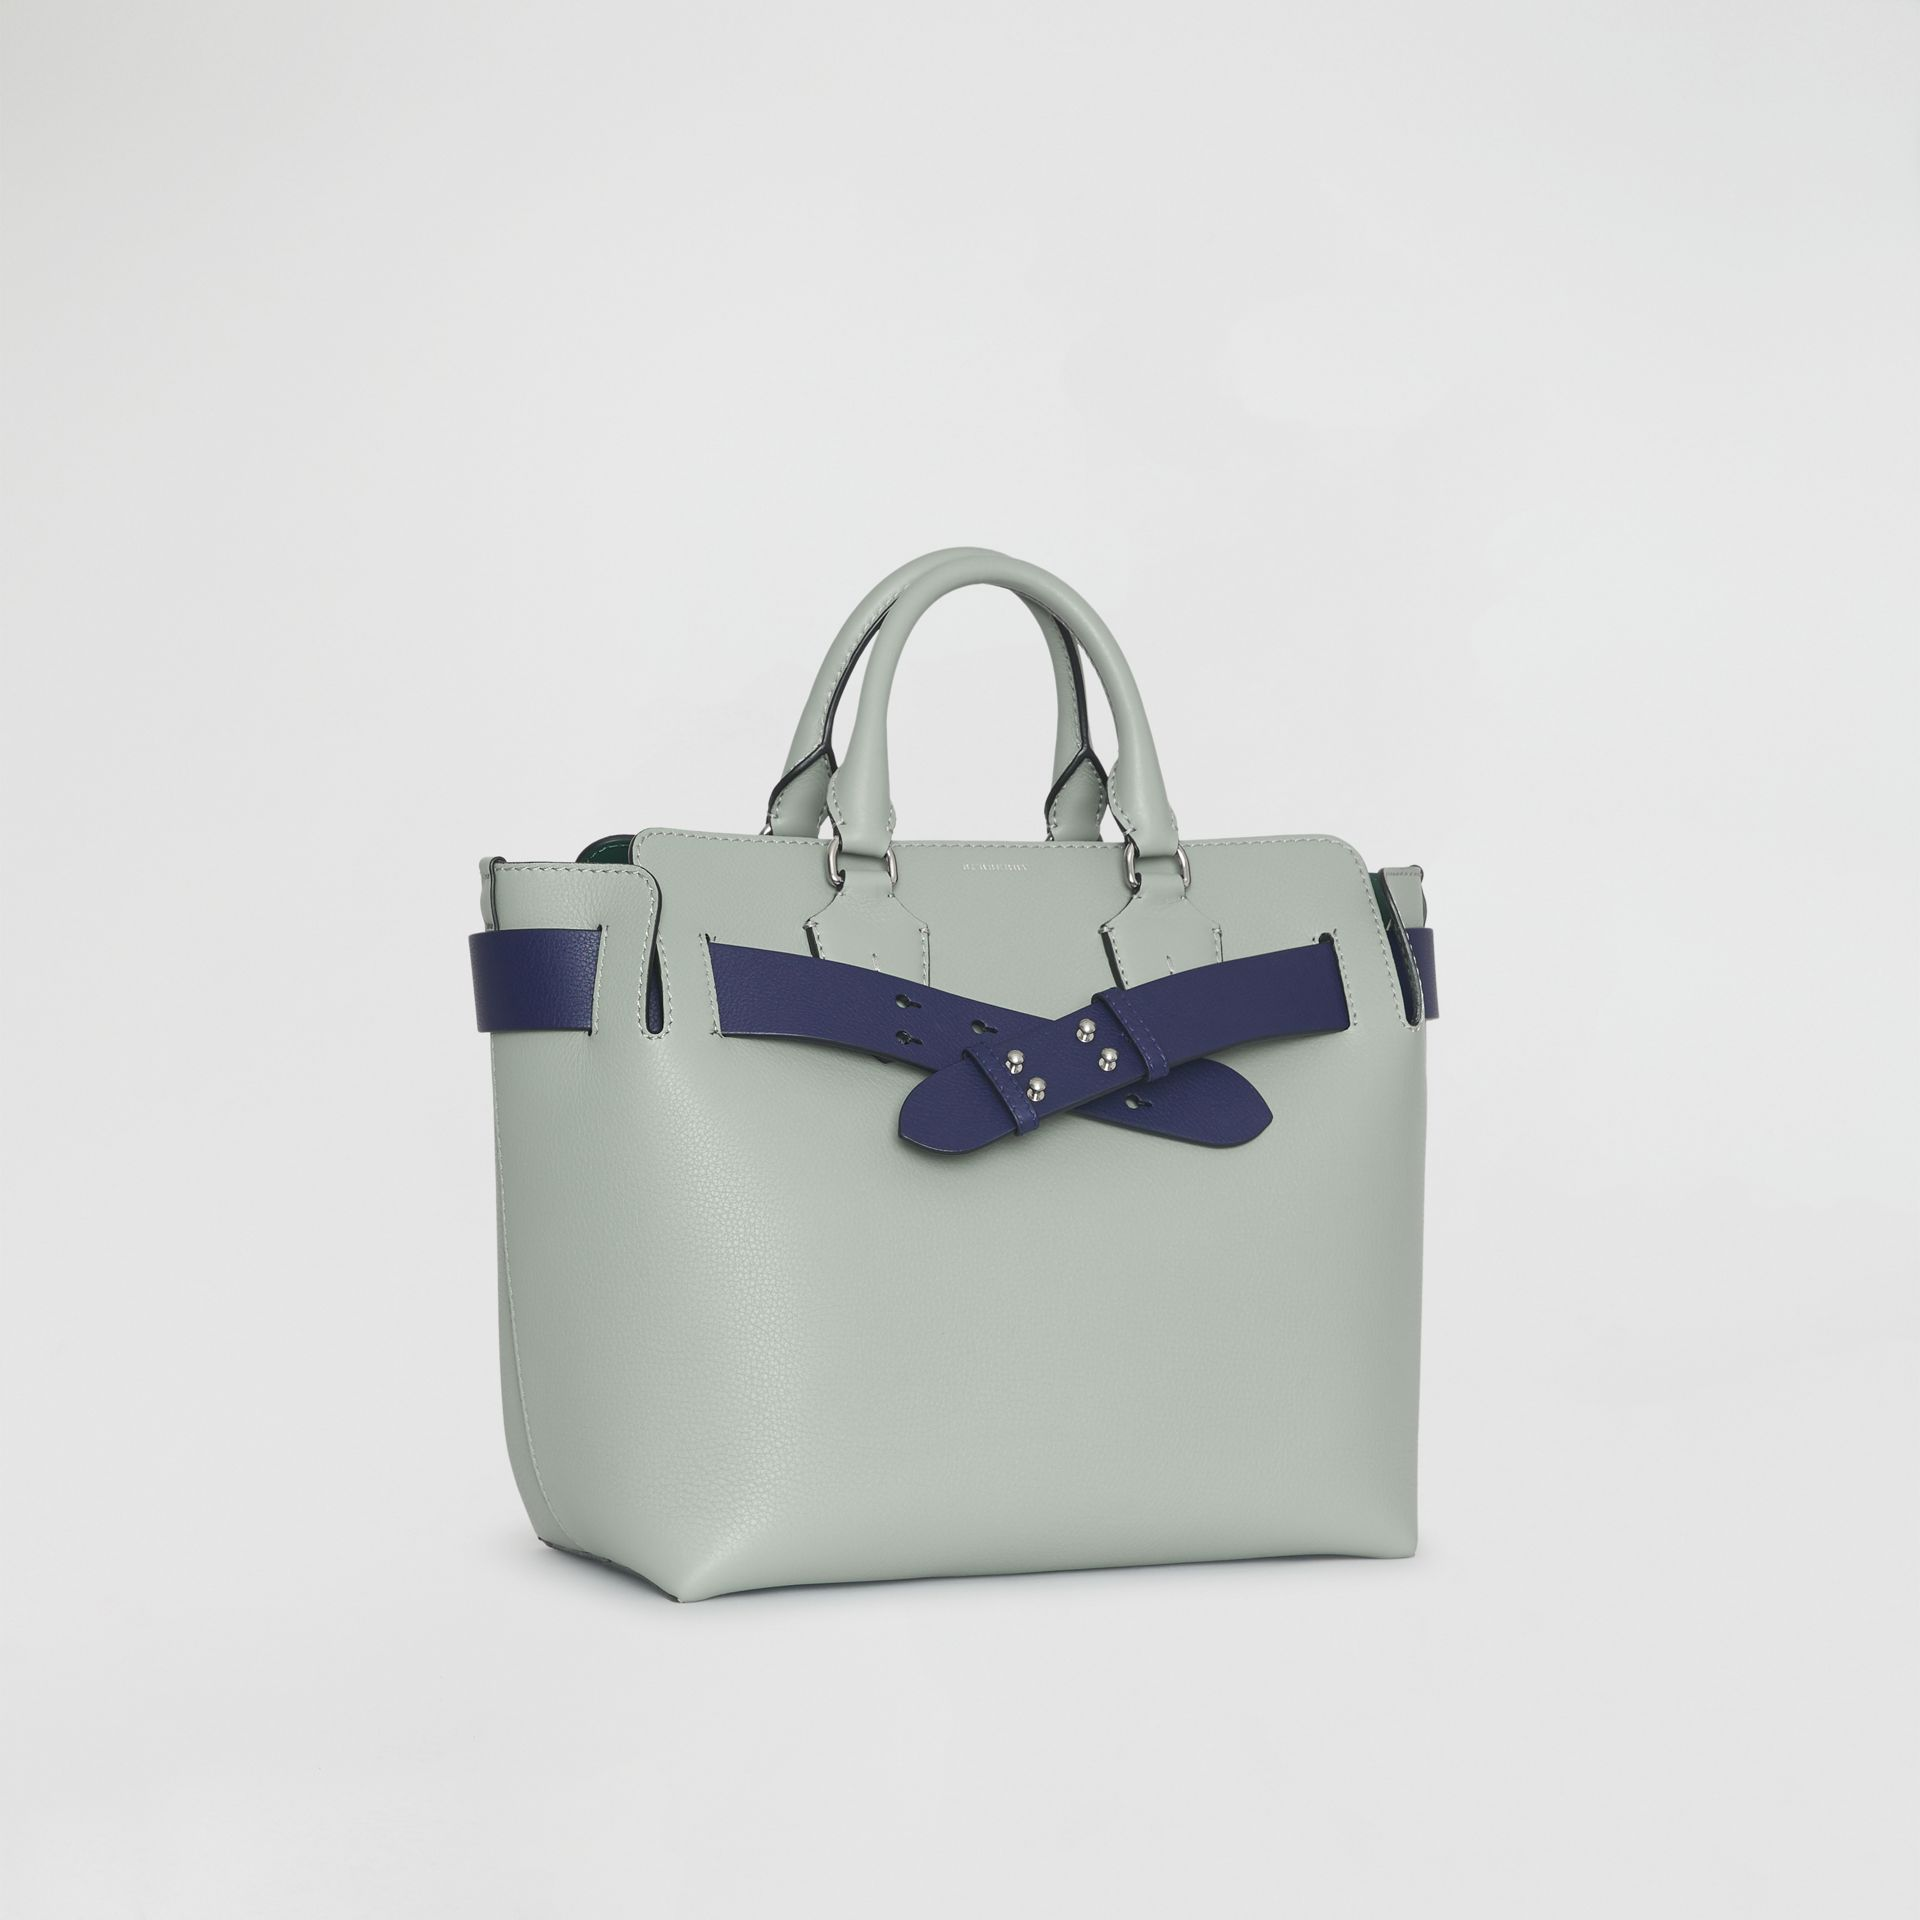 Sac The Belt moyen en cuir (Gris Bleu) - Femme | Burberry Canada - photo de la galerie 6